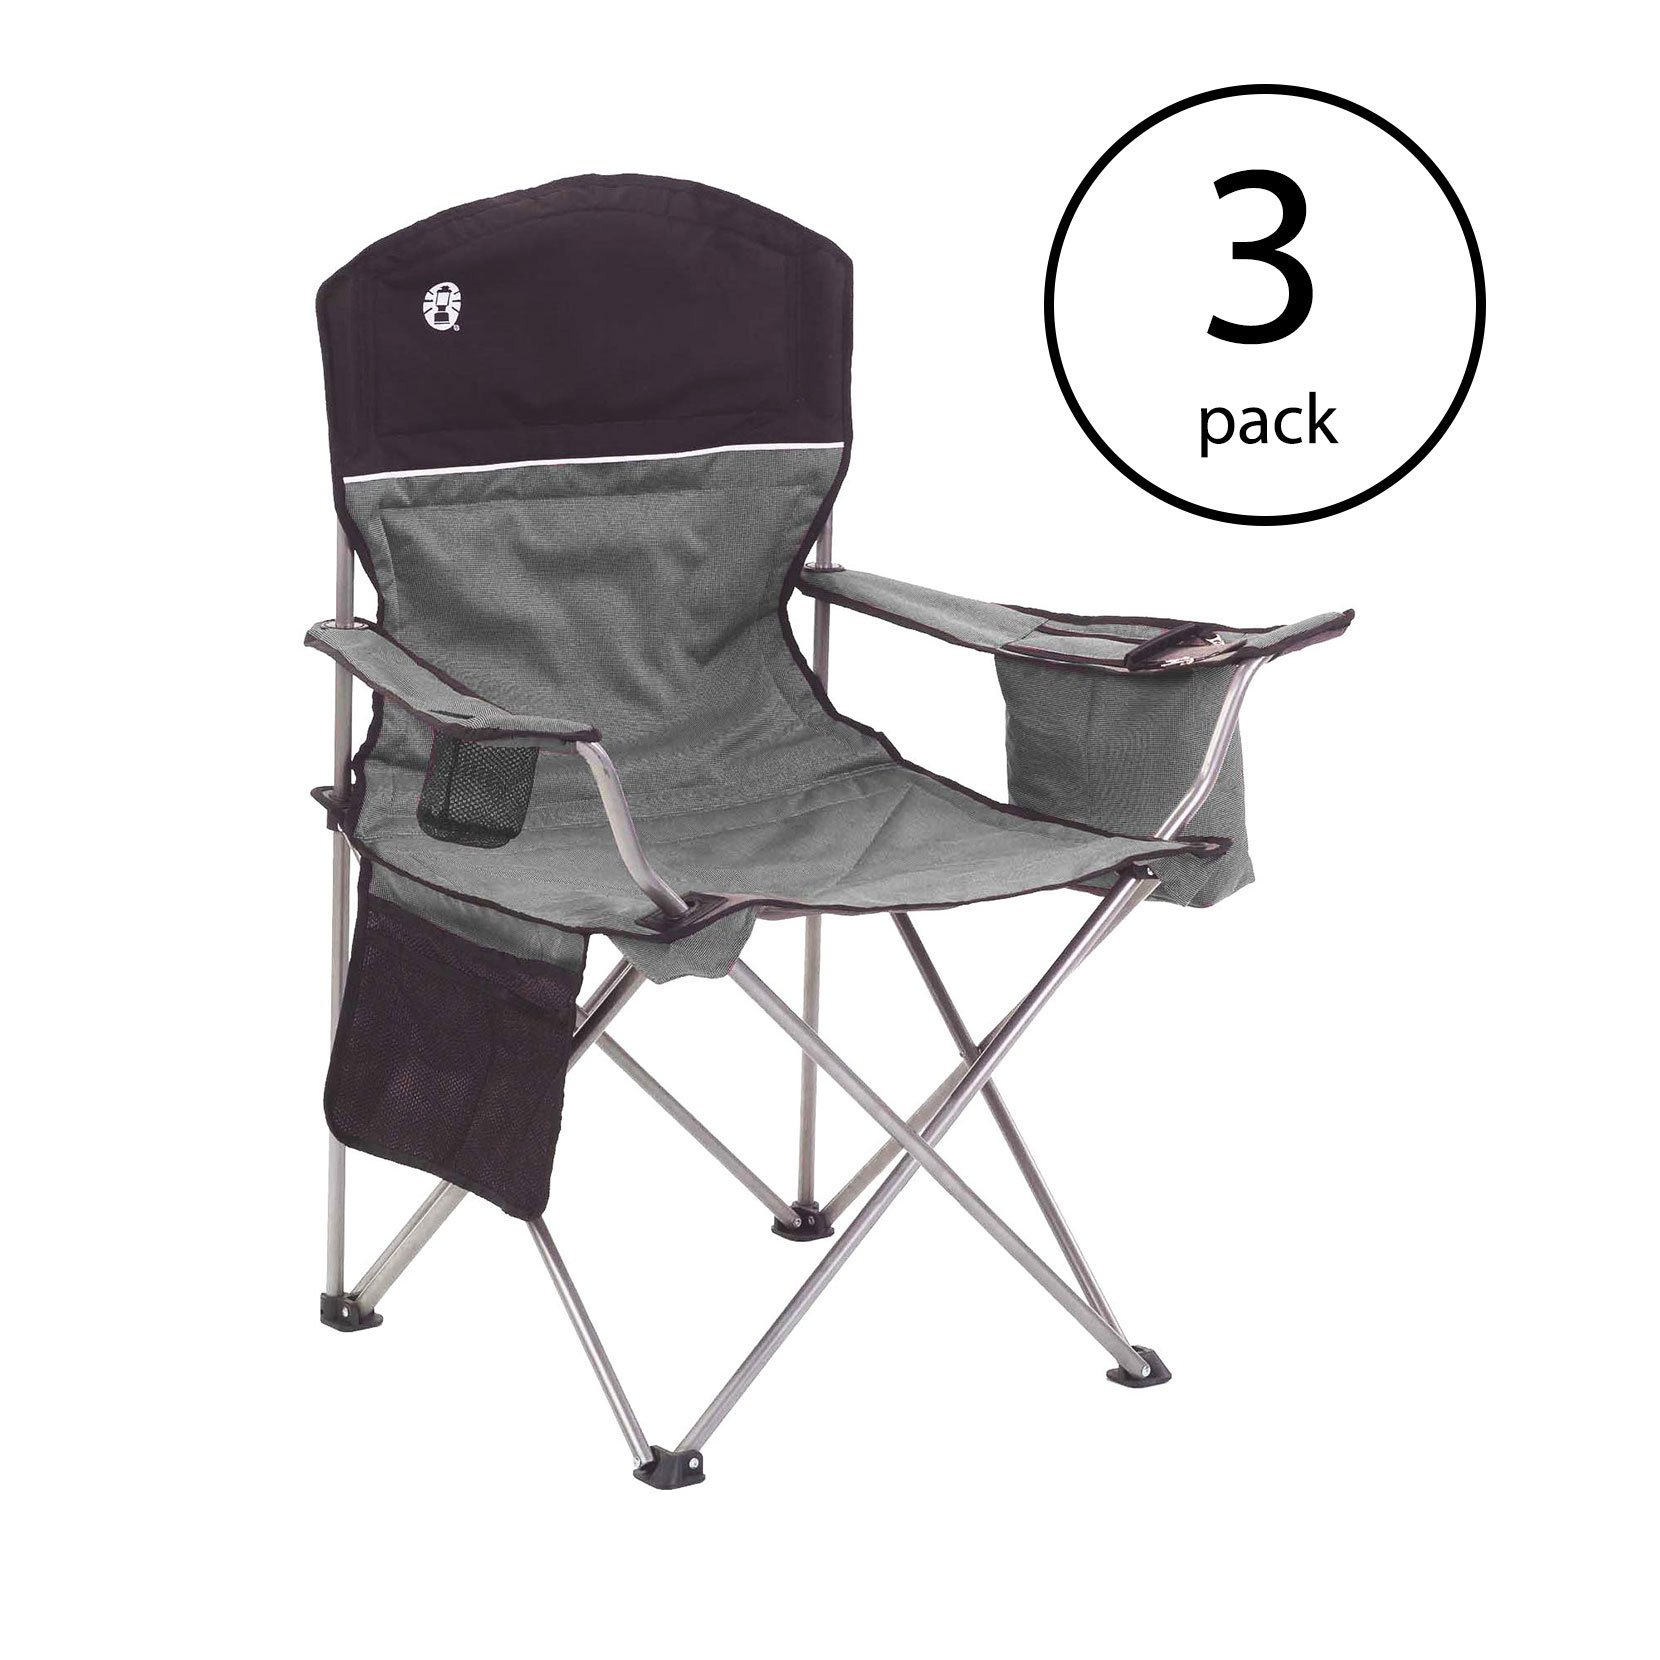 Coleman Oversized Quad Chair with Cooler and Cup Holder, Black/Gray (3 Pack)